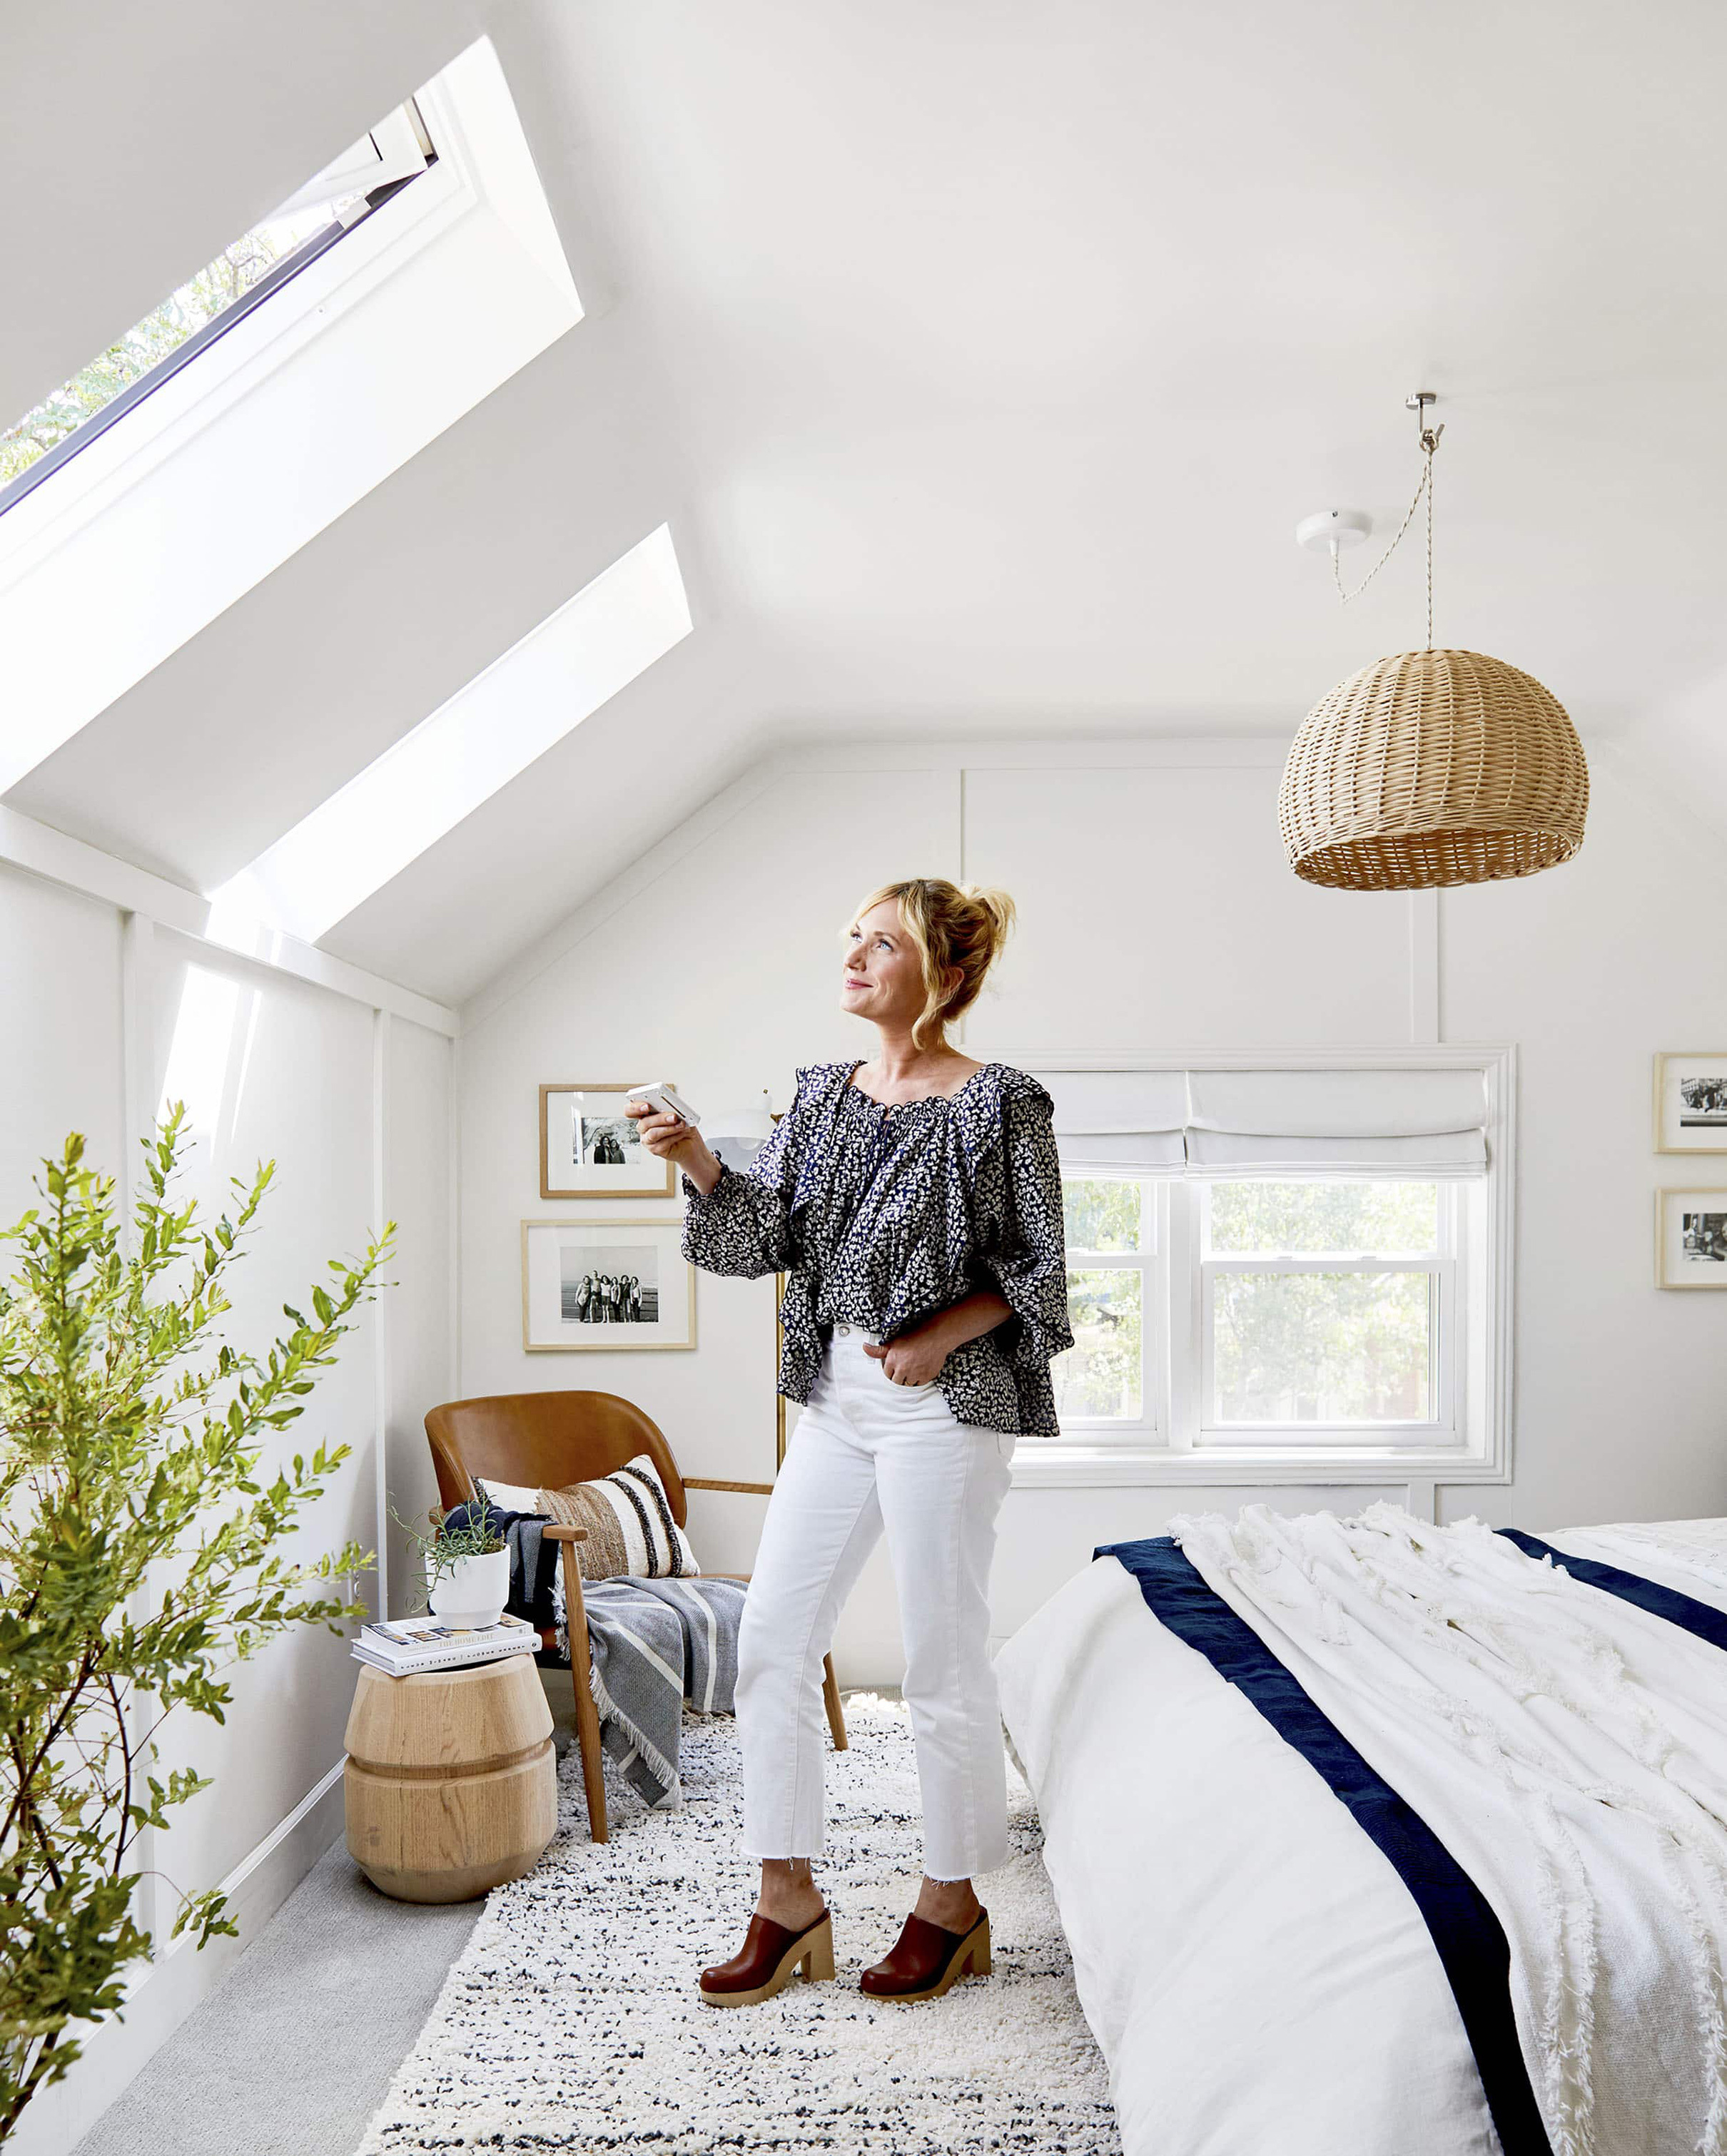 A woman stands in a bedroom under two skylights